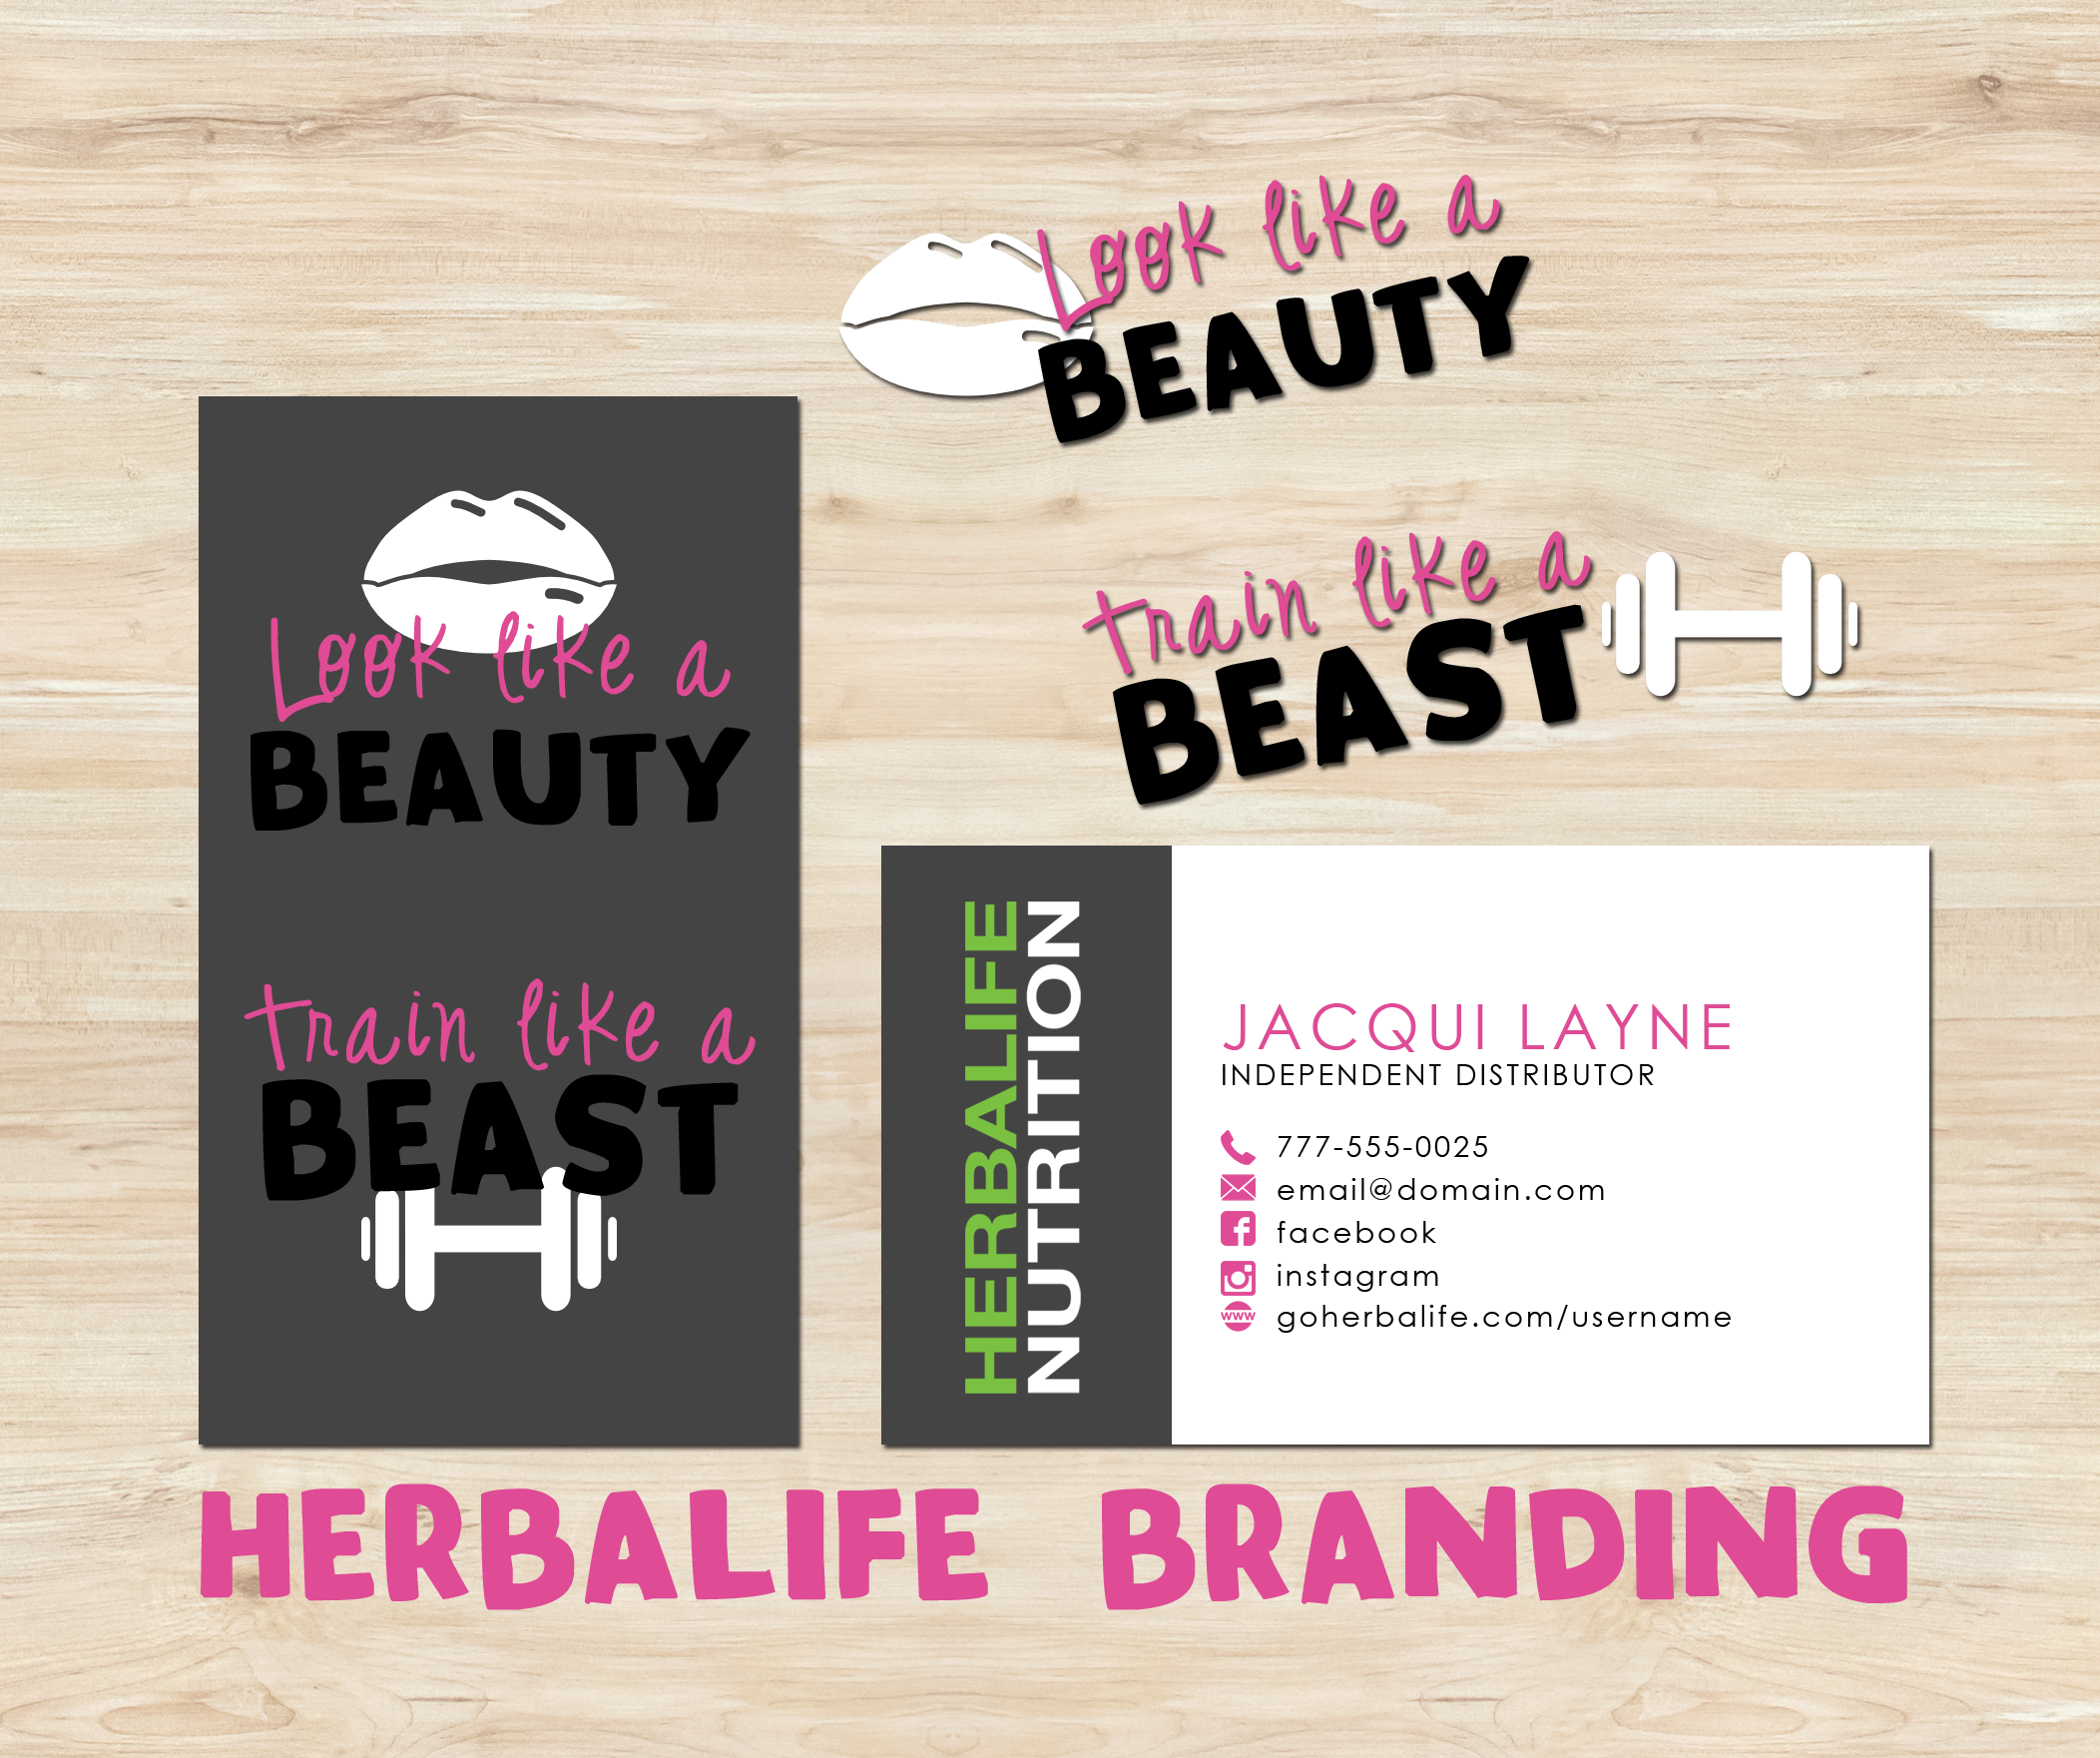 Herbalife business card digital template look like a beauty train herbalife business card digital template look like a beauty train like a beast reheart Image collections